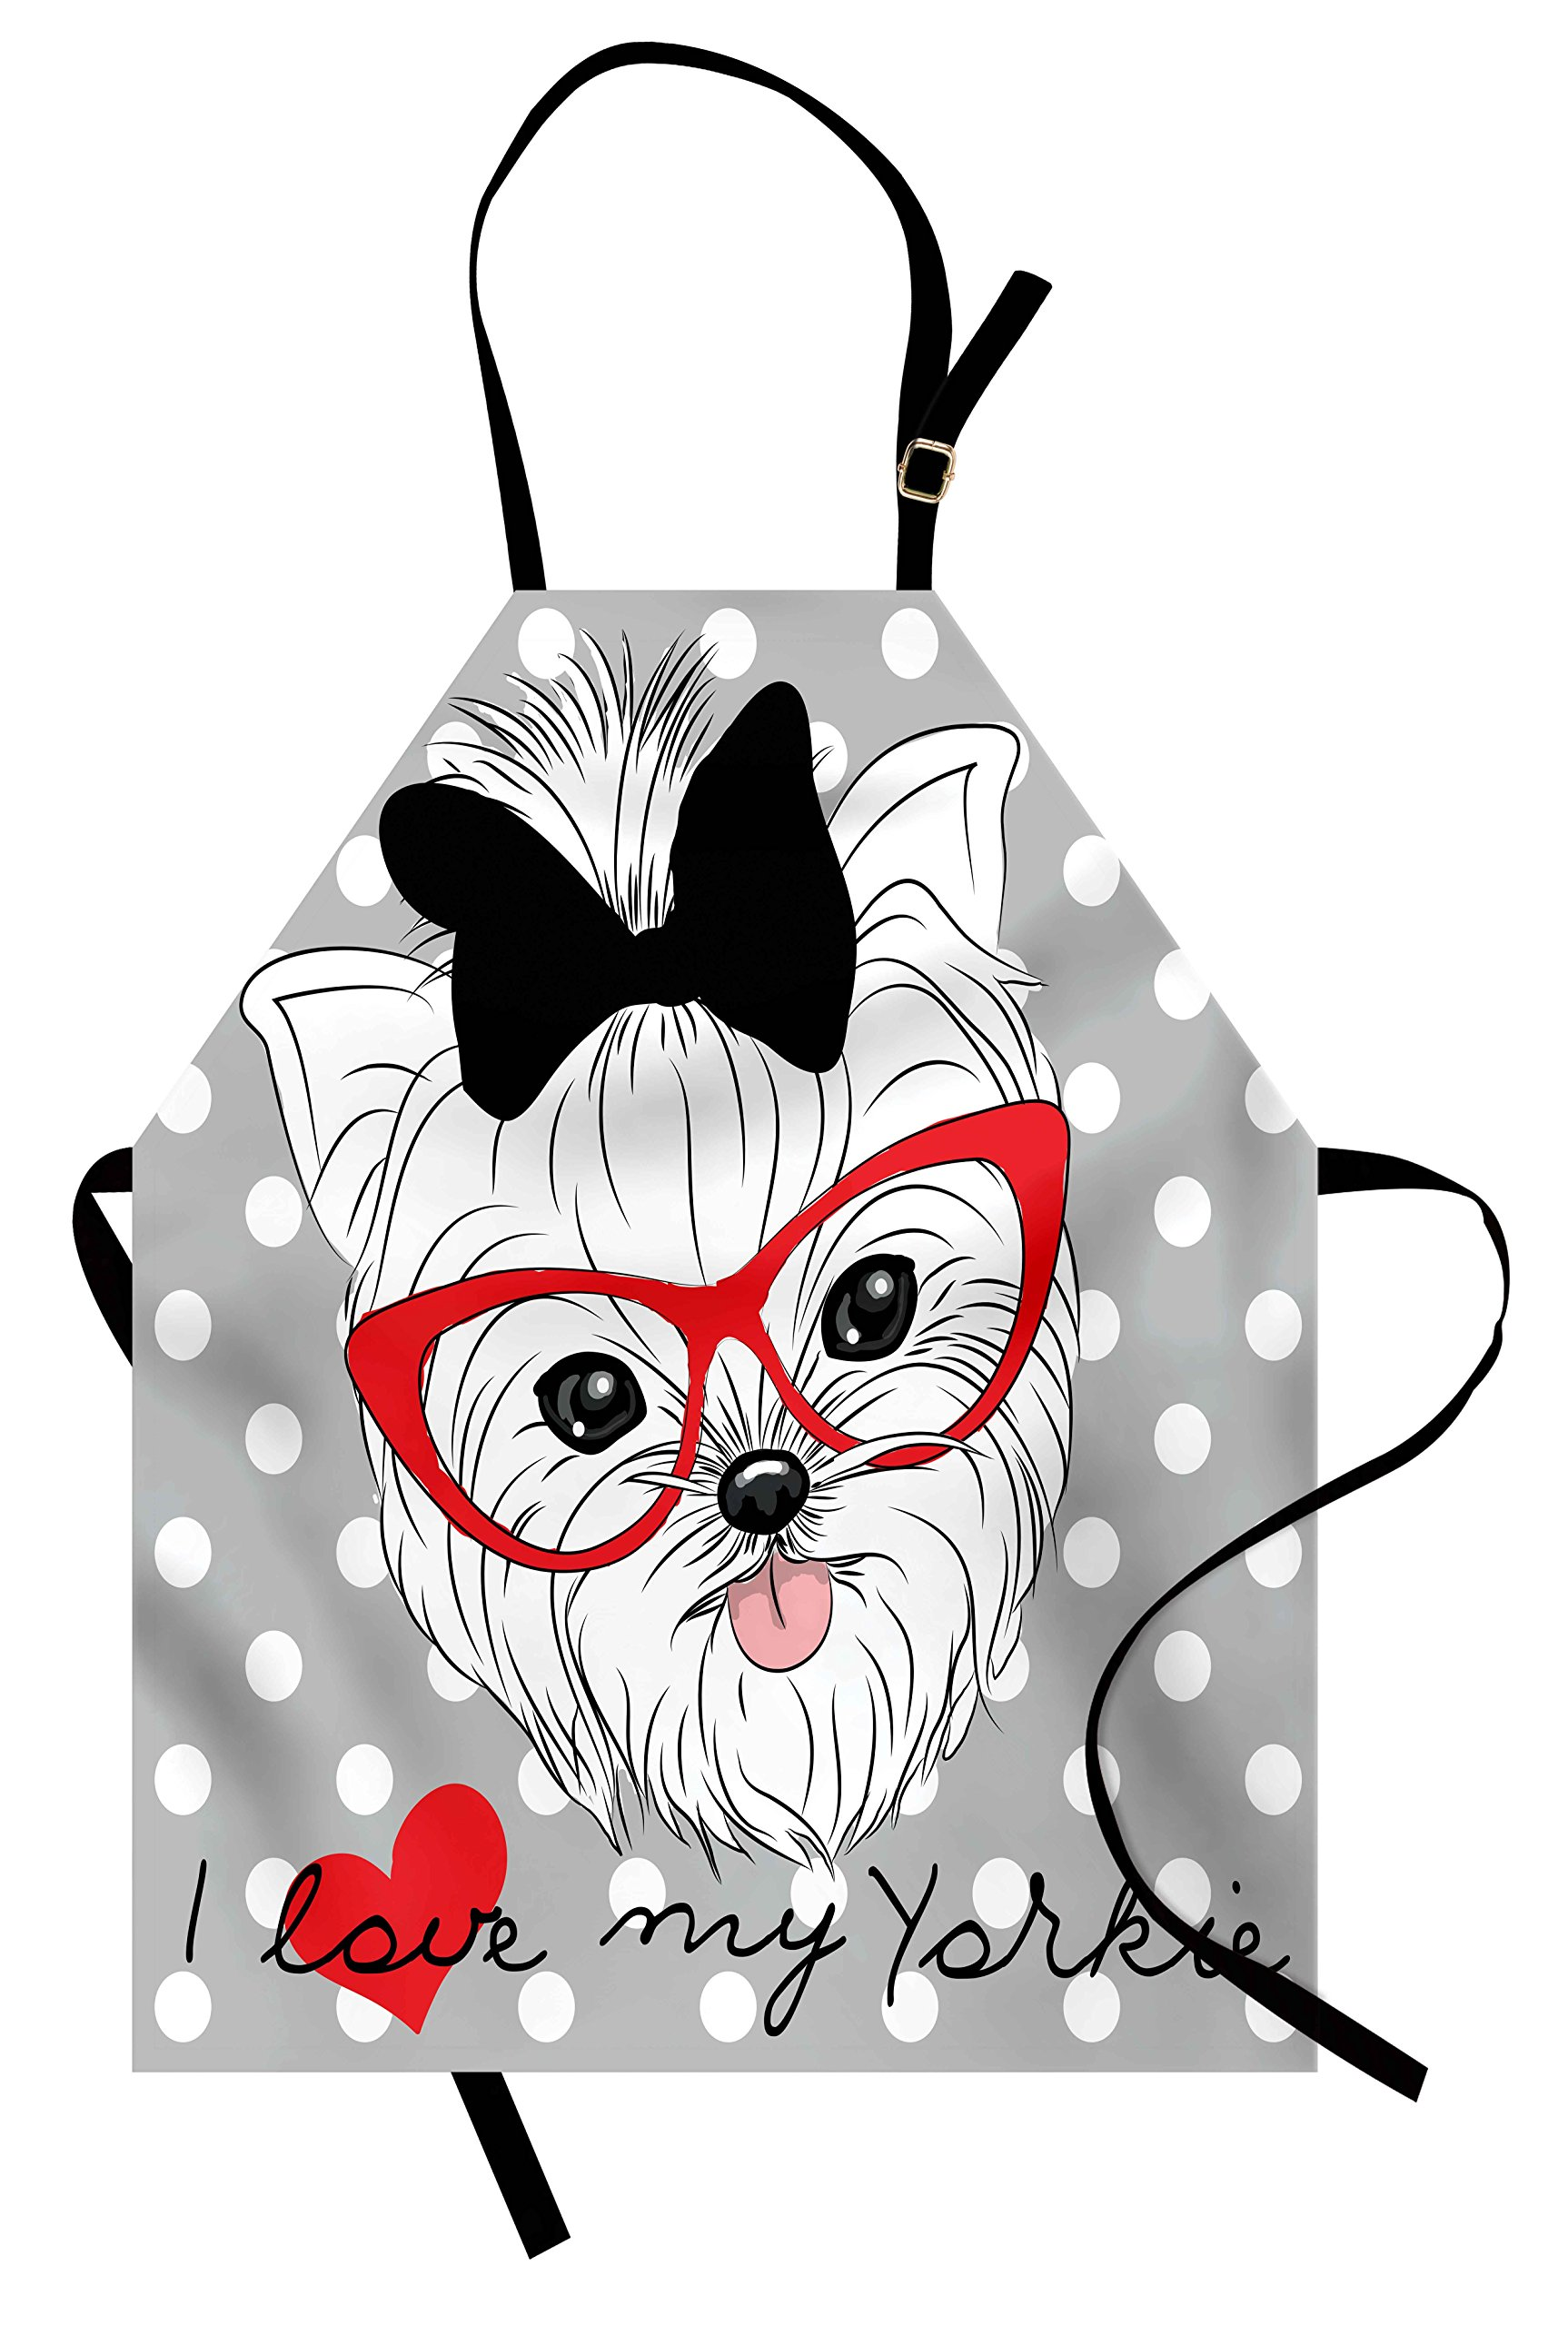 Ambesonne Yorkie Apron, Tilted Head Terrier I Love My Yorkie Red Nerd Glasses Love Heart Polka Dots, Unisex Kitchen Bib Apron with Adjustable Neck for Cooking Baking Gardening, Black White Red